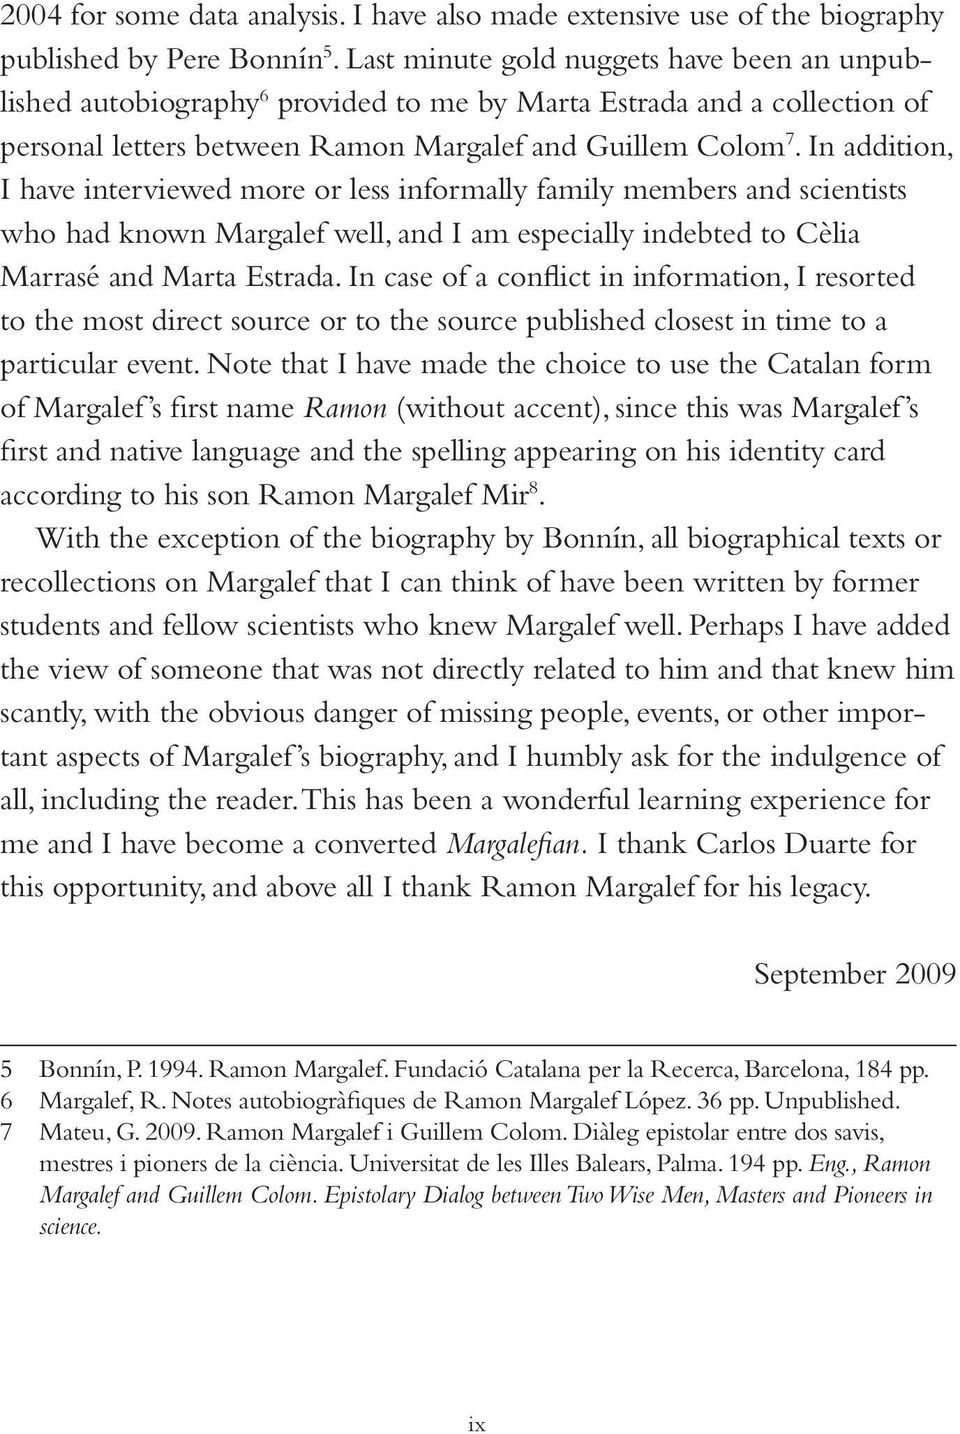 In addition, I have interviewed more or less informally family members and scientists who had known Margalef well, and I am especially indebted to Cèlia Marrasé and Marta Estrada.